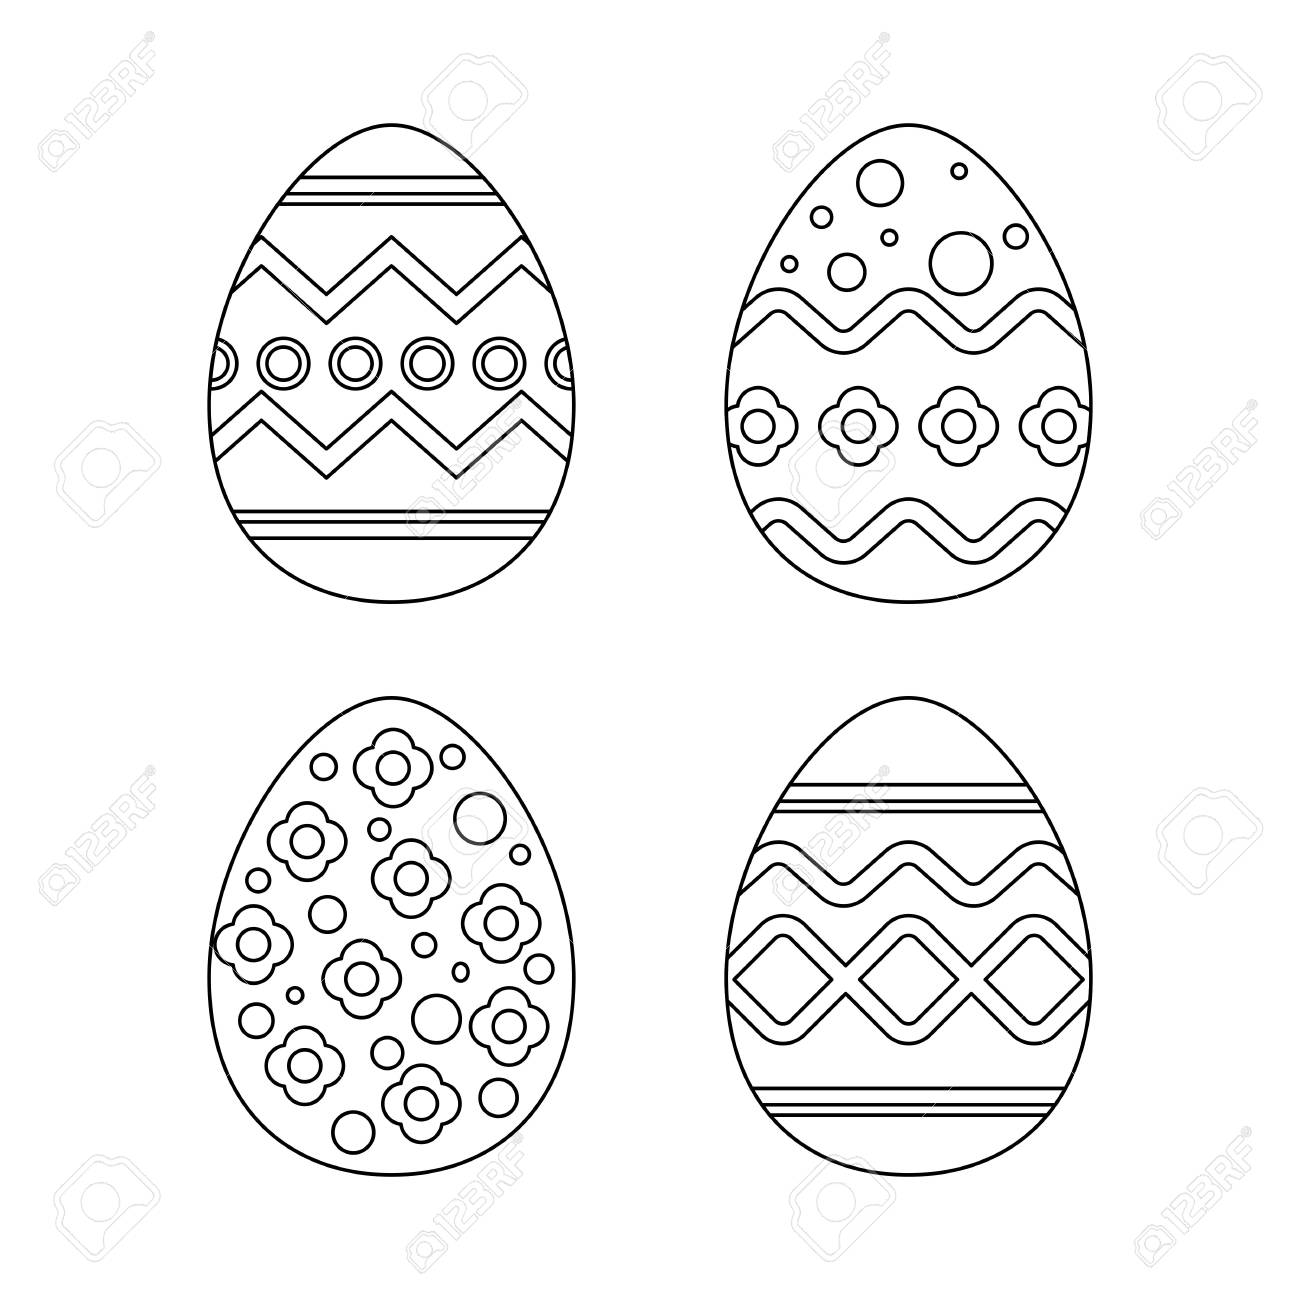 Four easter egg pattern royalty free cliparts vectors and stock four easter egg pattern stock vector 96281398 maxwellsz